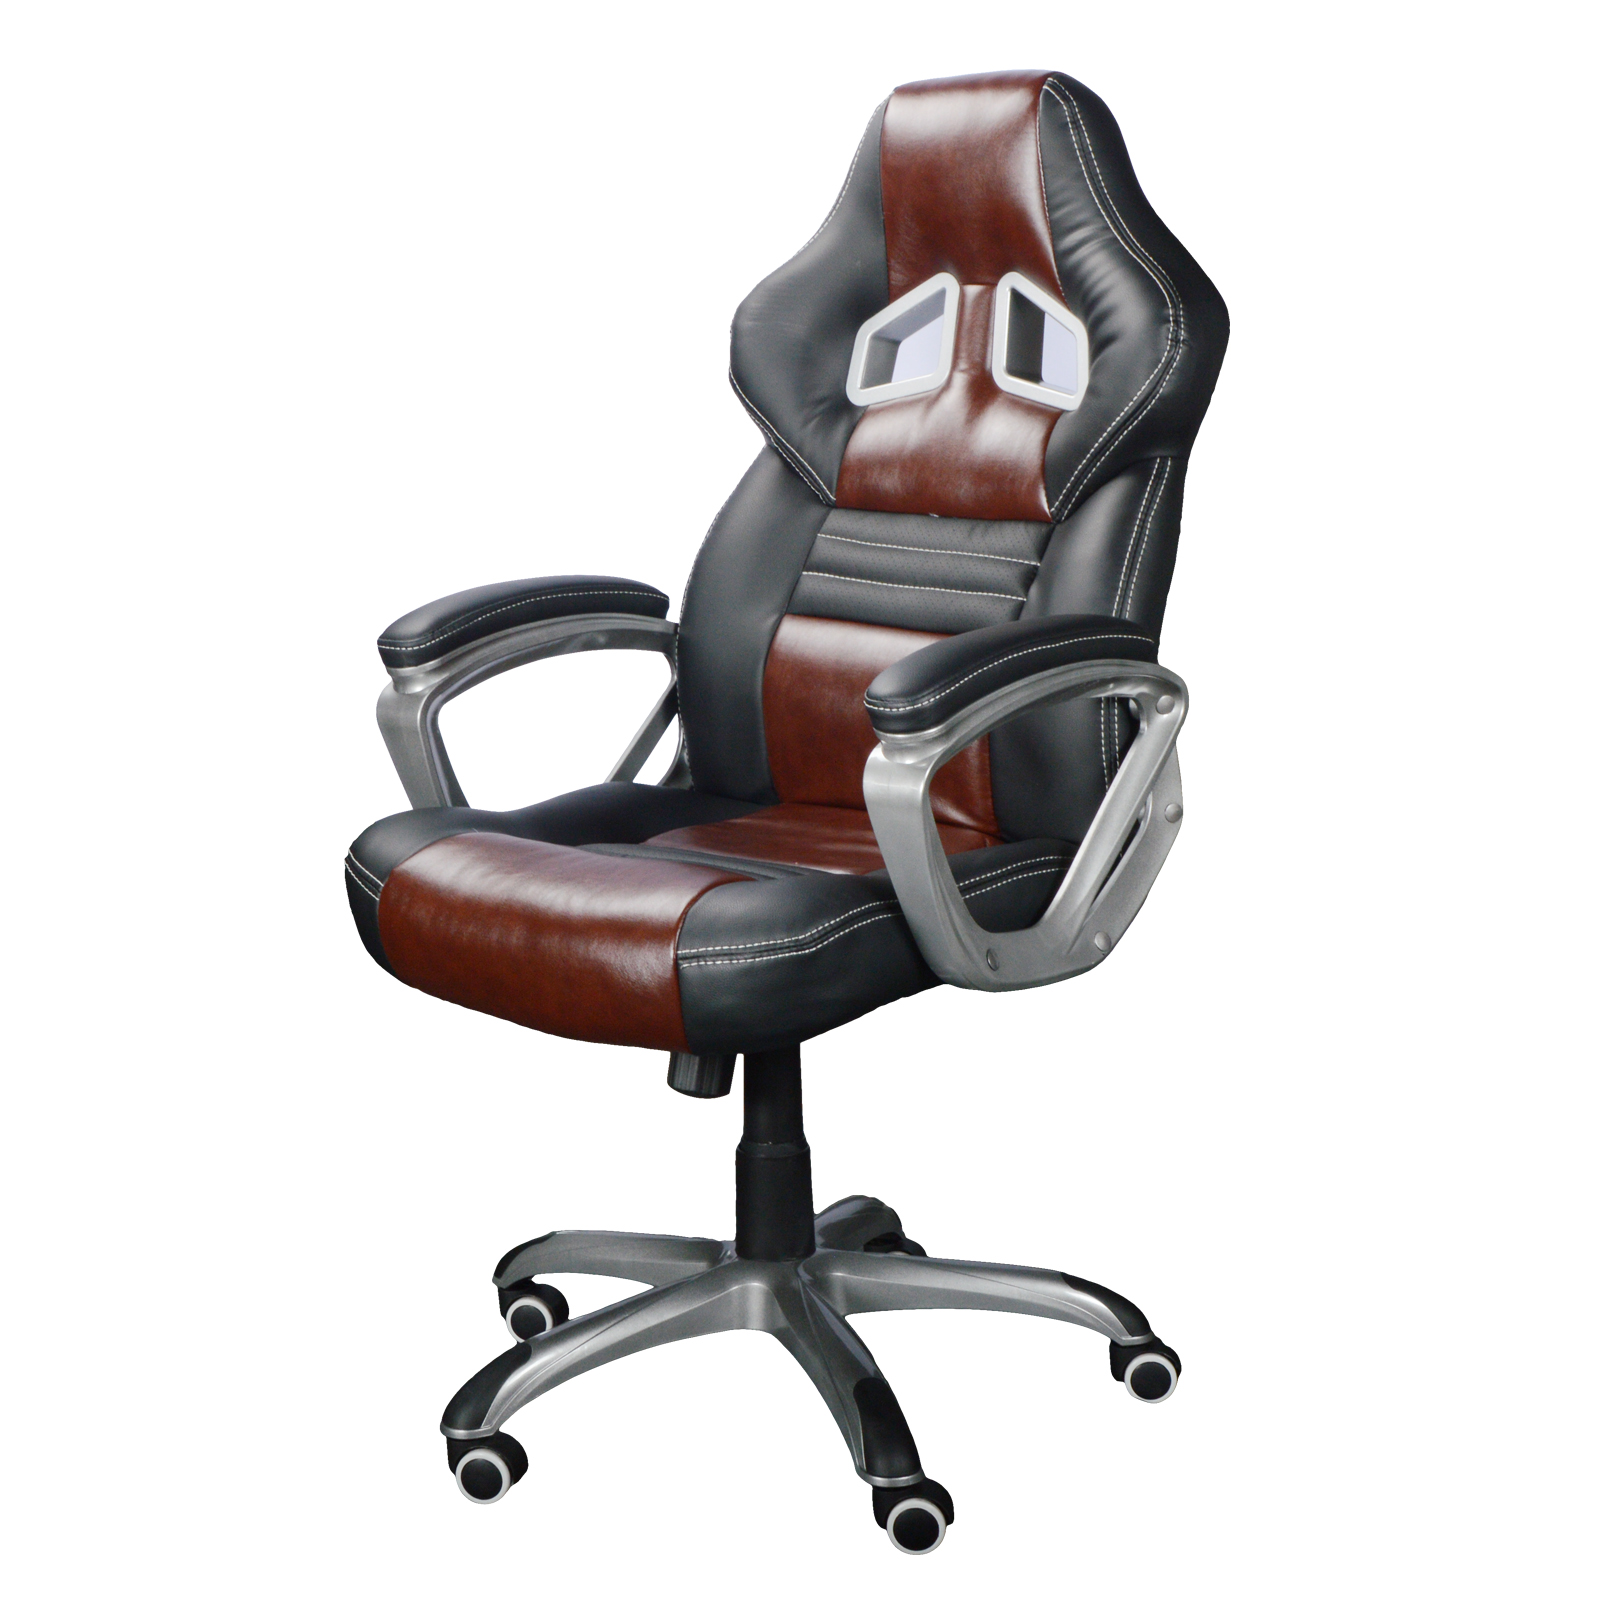 chair chair office chair swivel chair racing bucket seat office racer